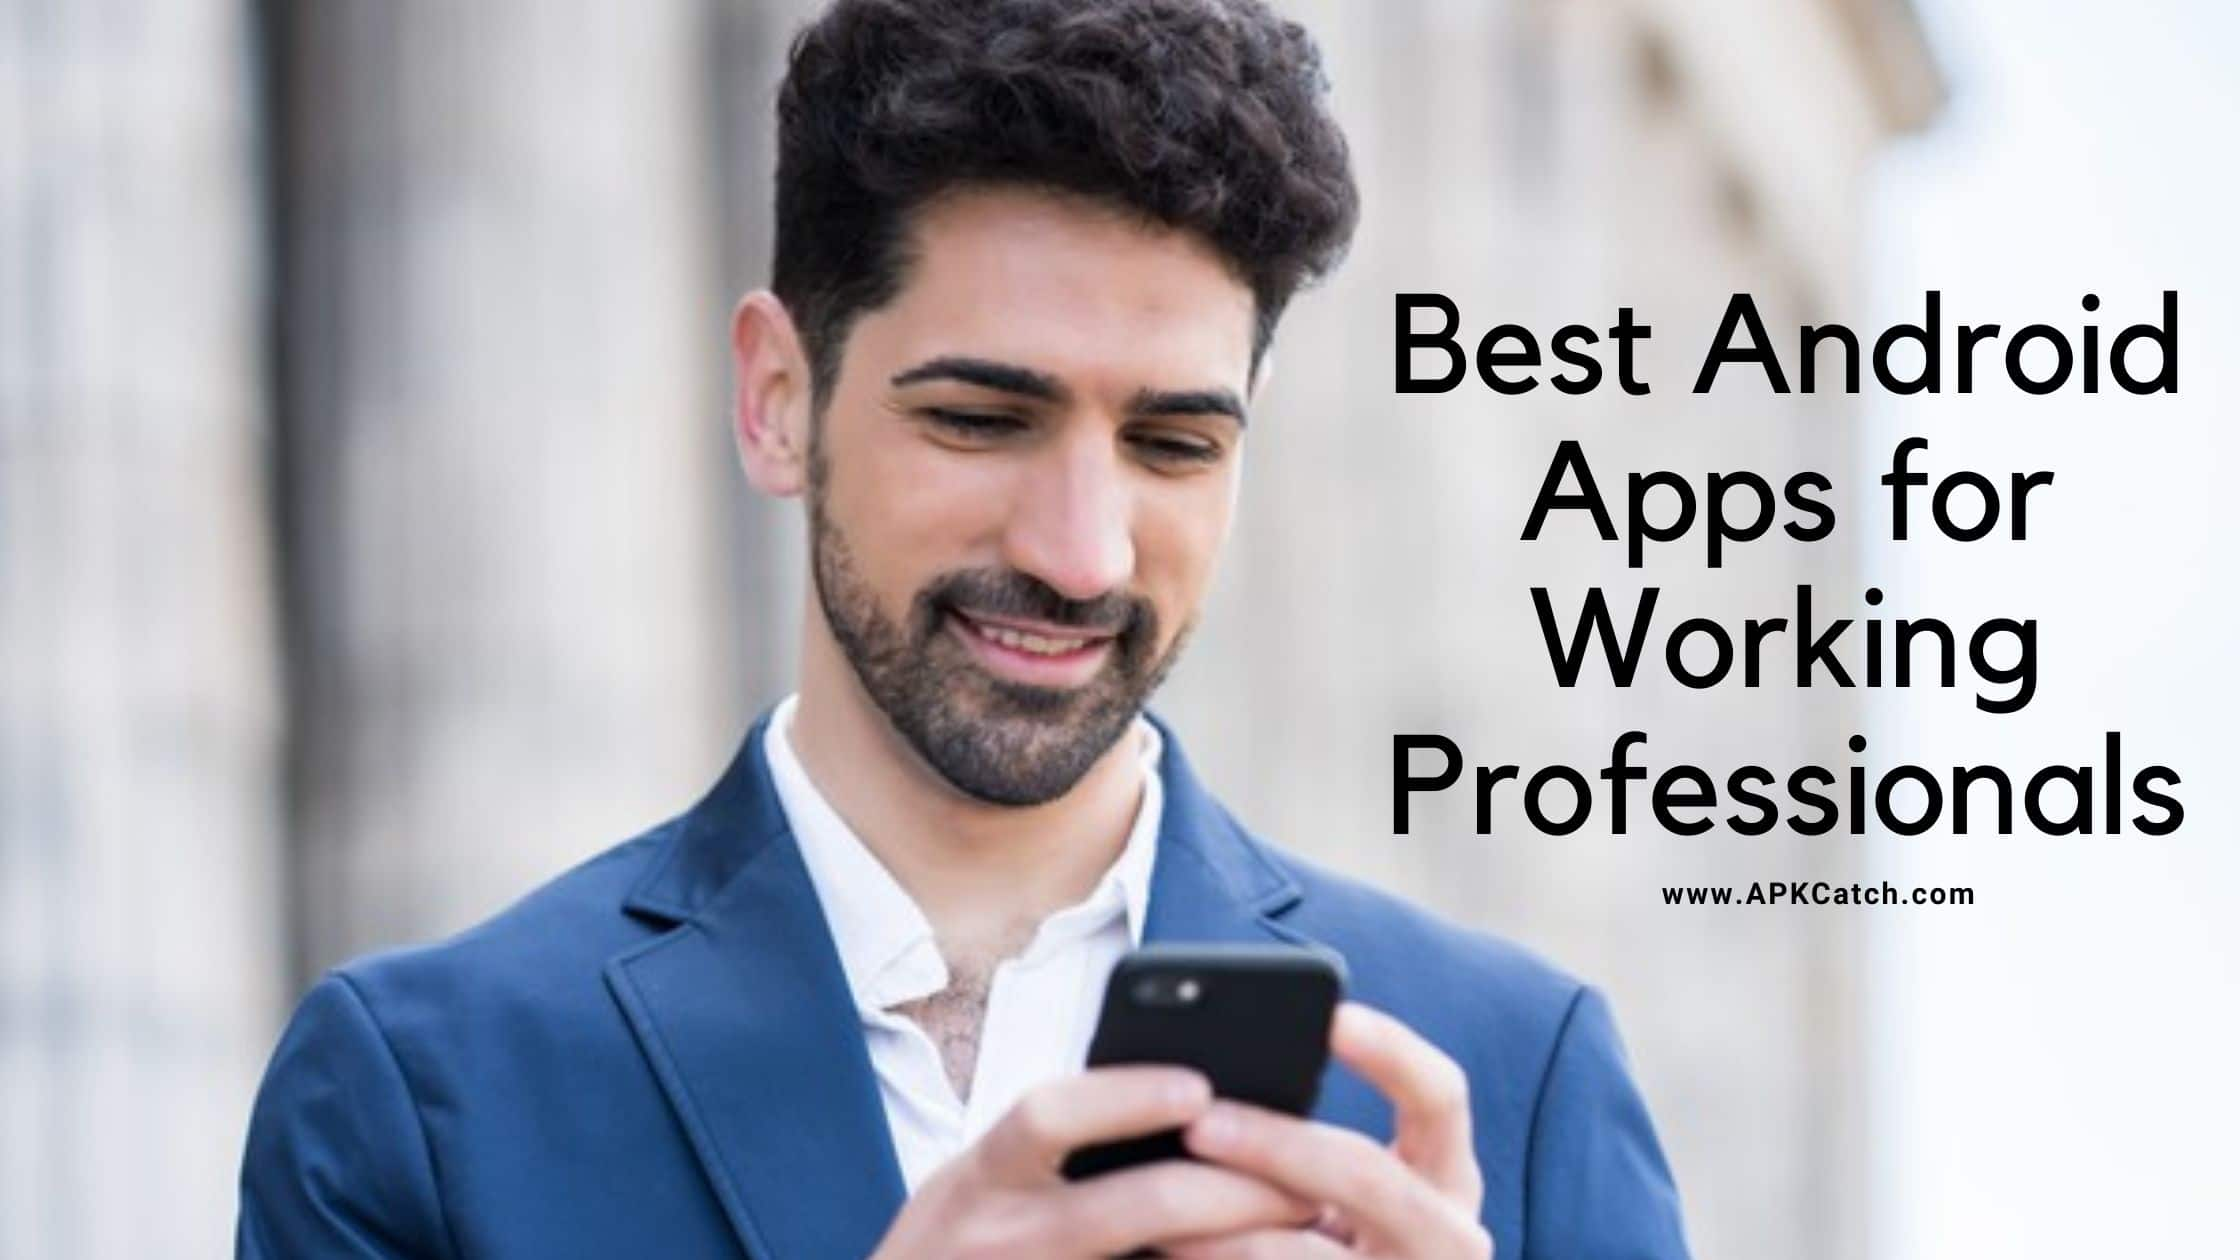 Best Android Apps for Working Professionals